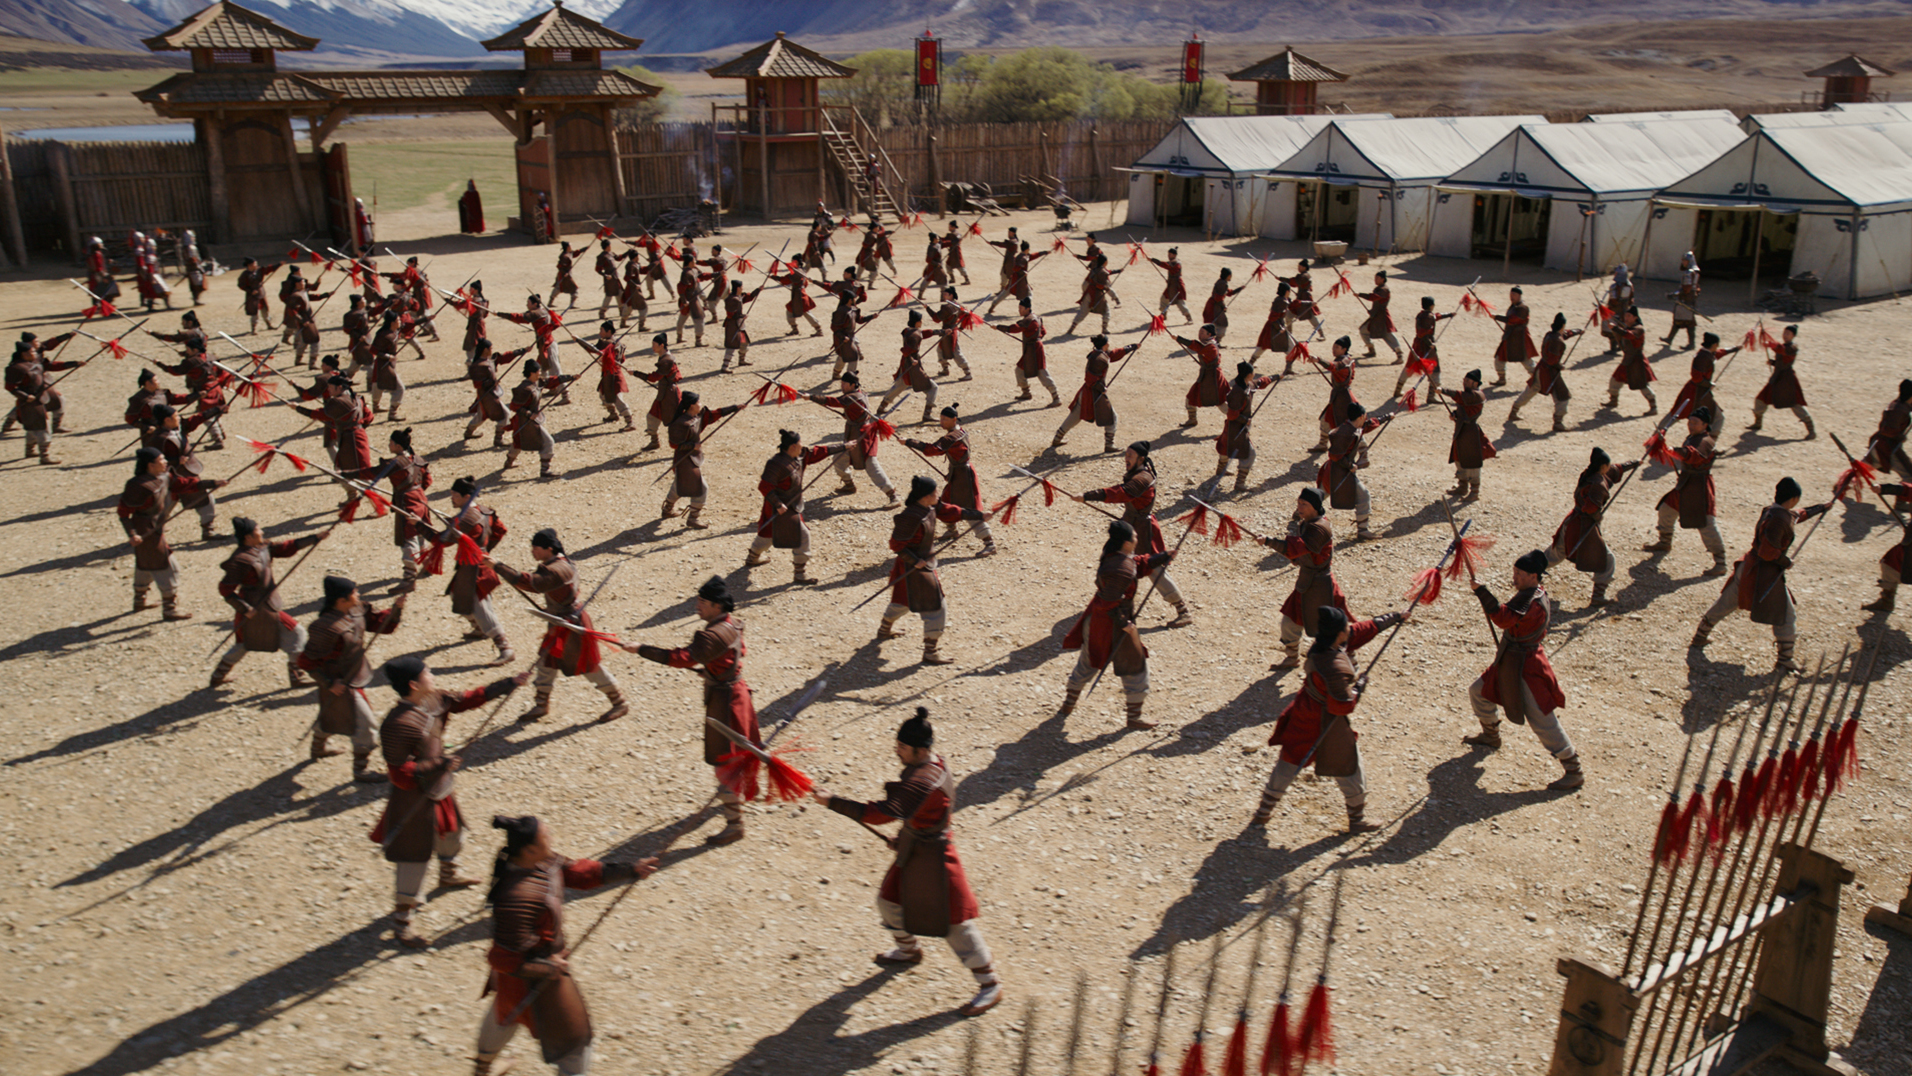 Mulan training scene